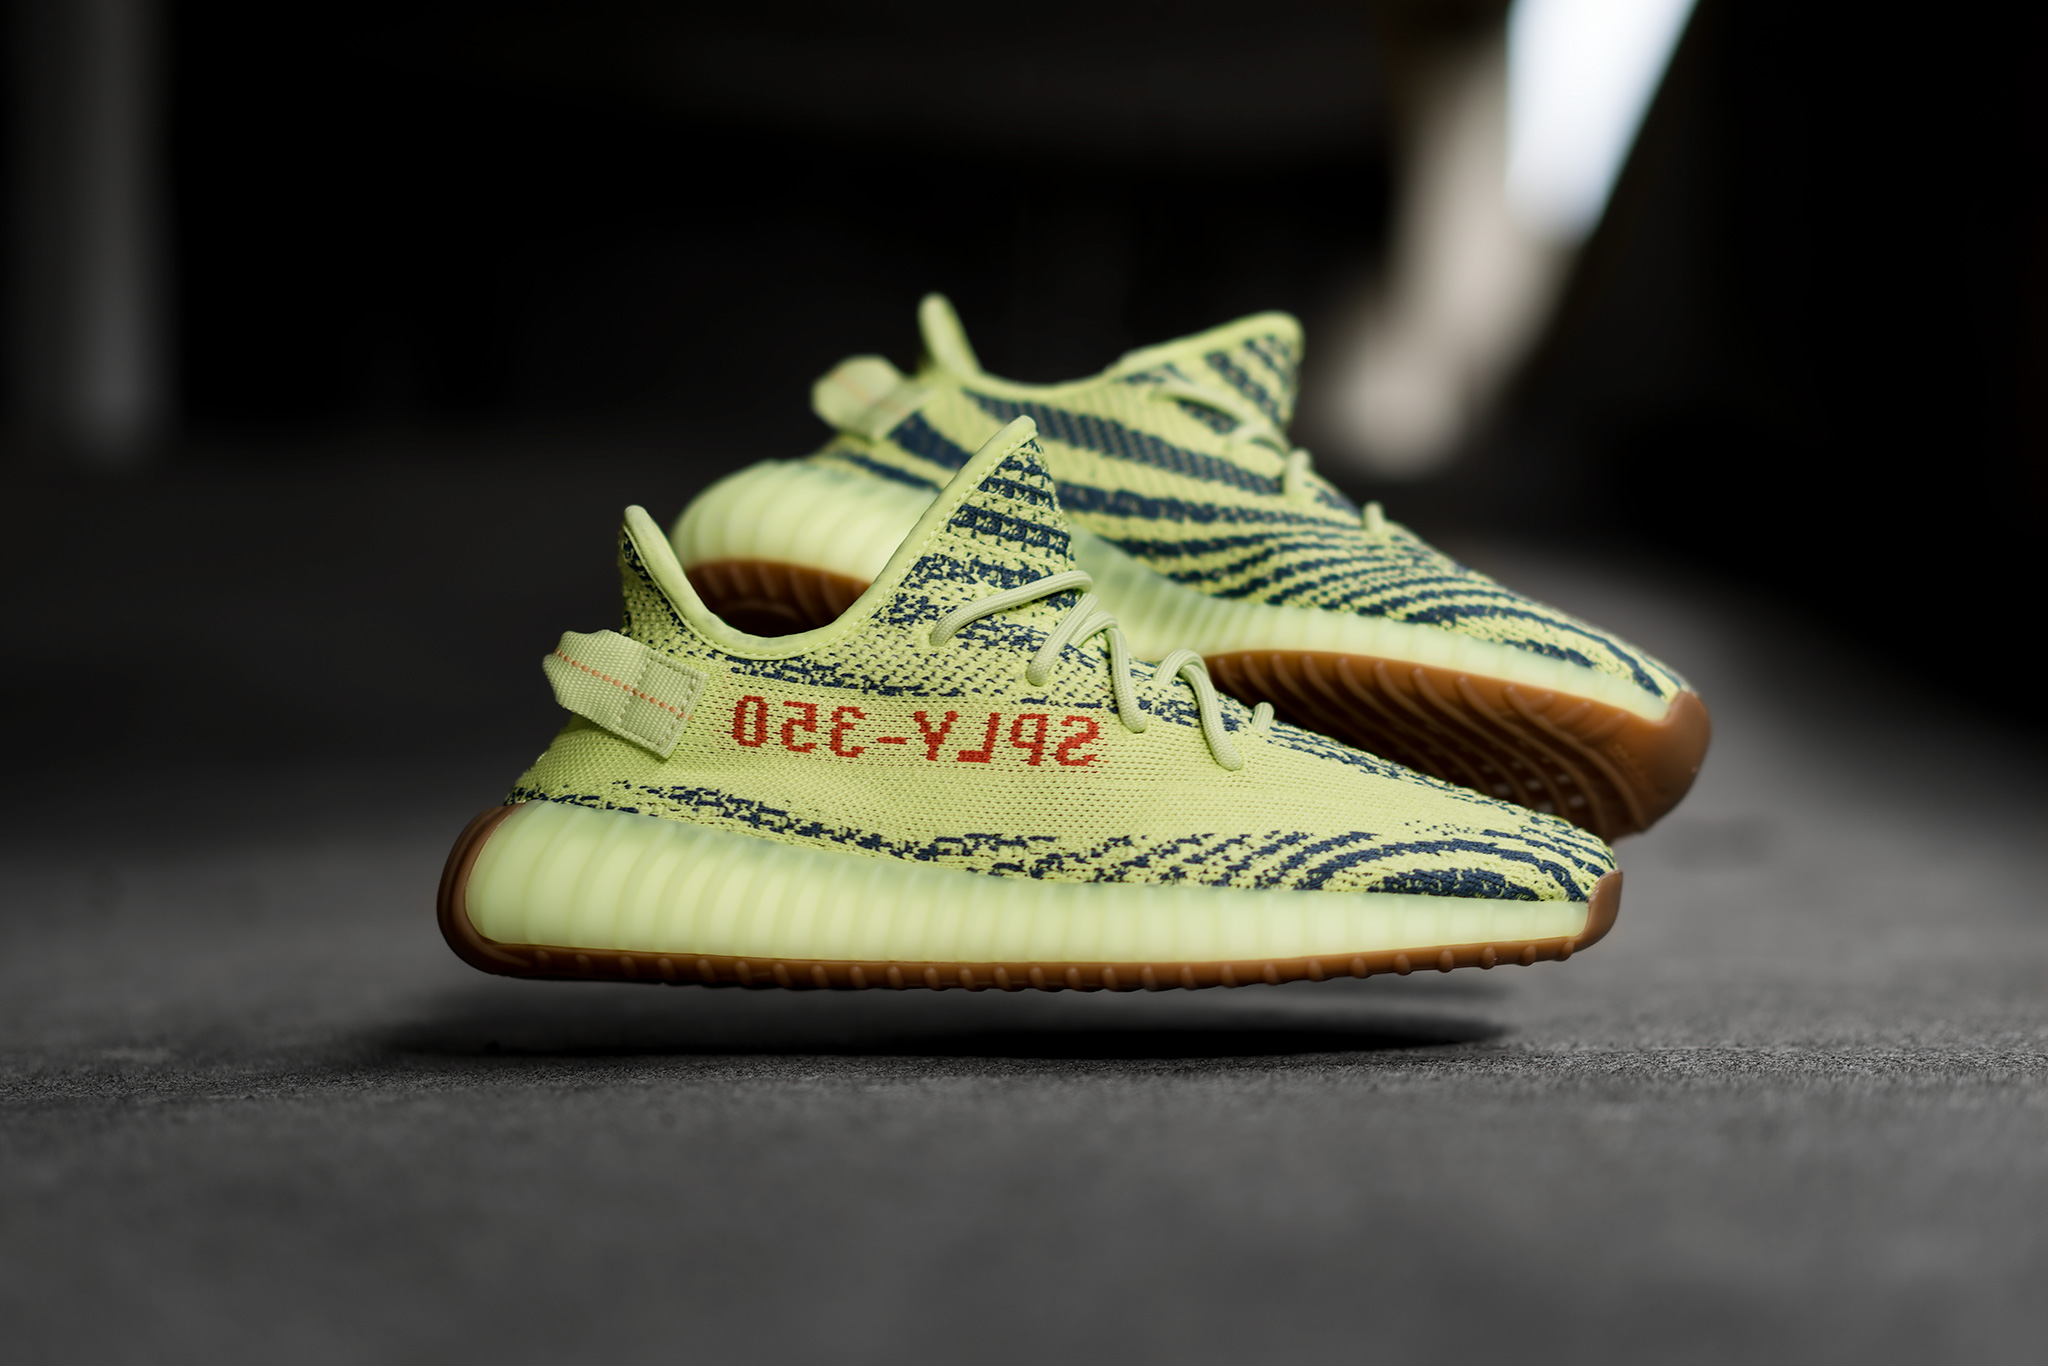 new style 14abf 337e9 Adidas Yeezy Boost 350 V2 Semi Frozen Yellow